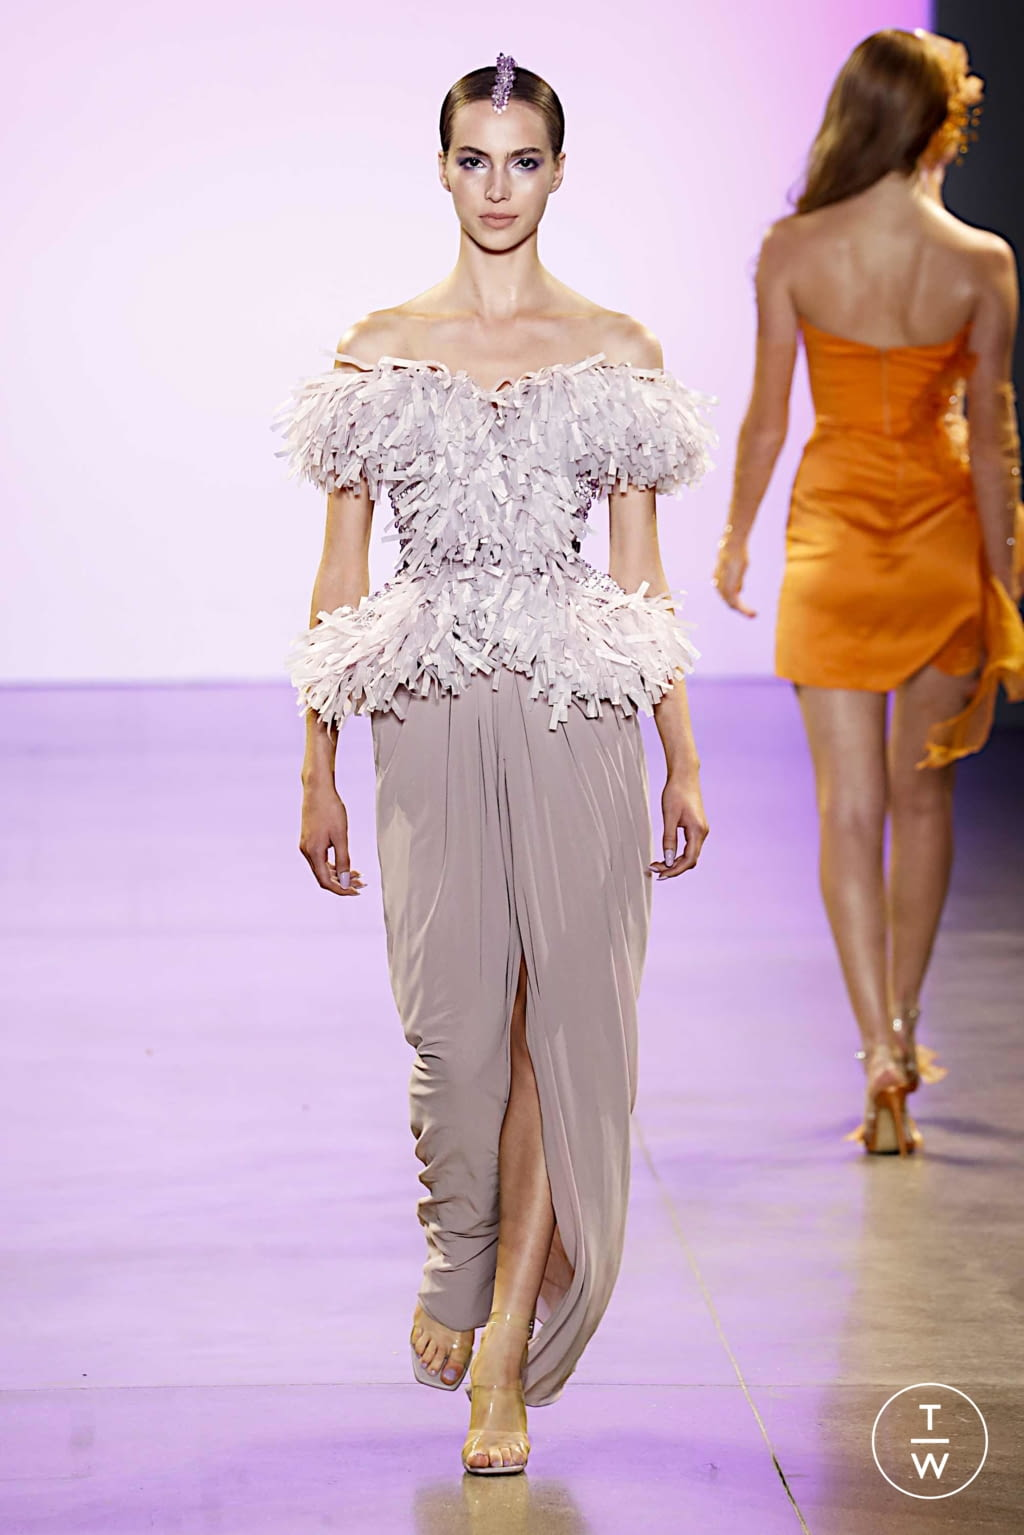 Fashion Week New York Spring/Summer 2020 look 2 from the Affair collection 女装